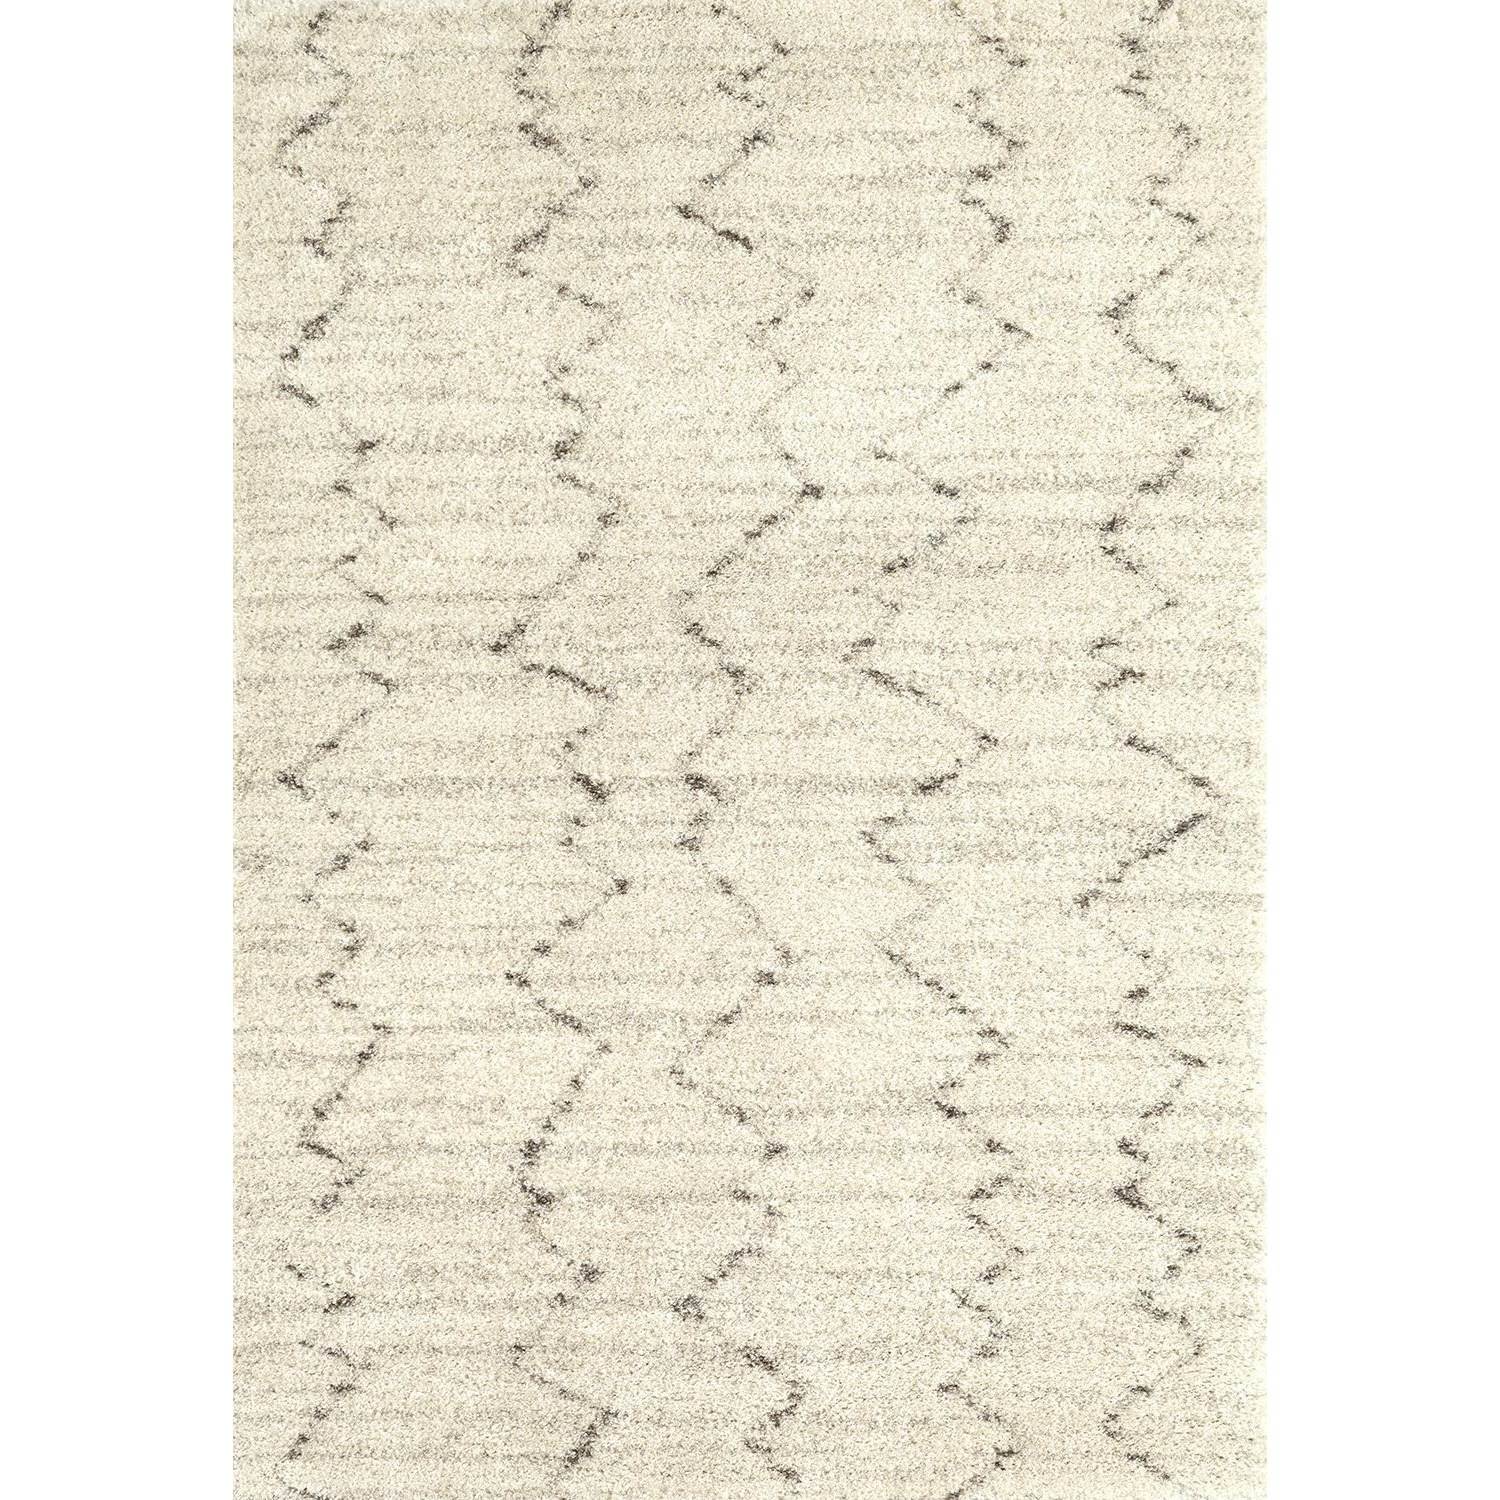 Prima Shag 10'6x13'2 Fassi Ivory Rug by Karastan Rugs at Darvin Furniture